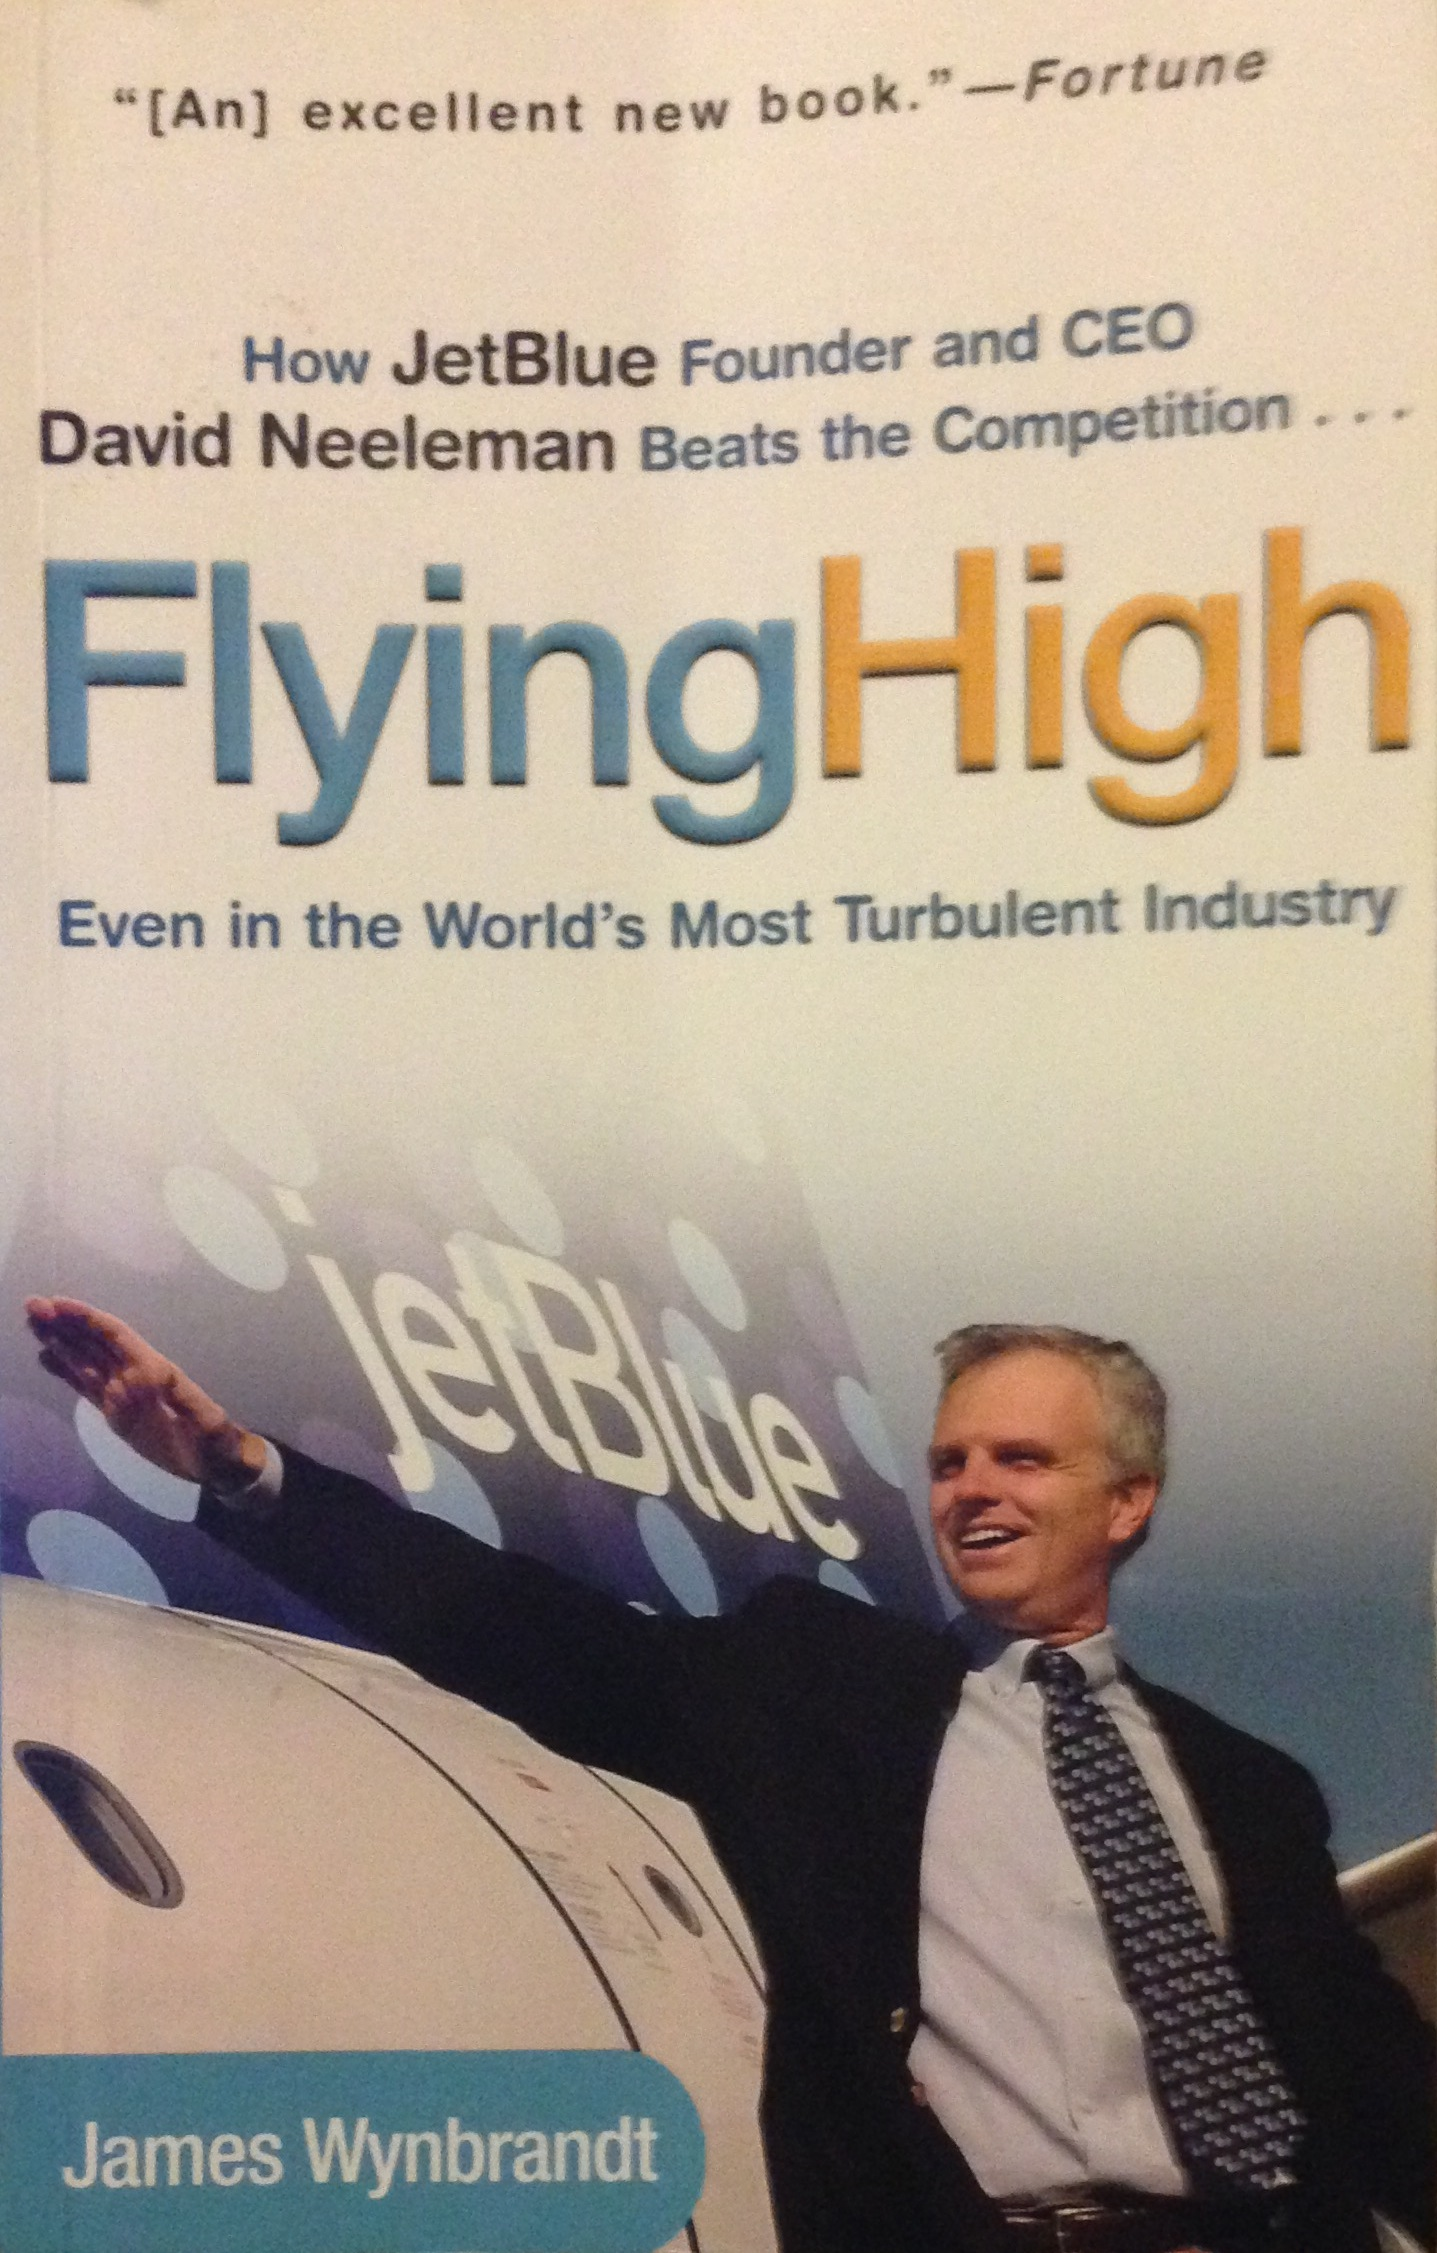 flying high_book_david neeleman_jetblue